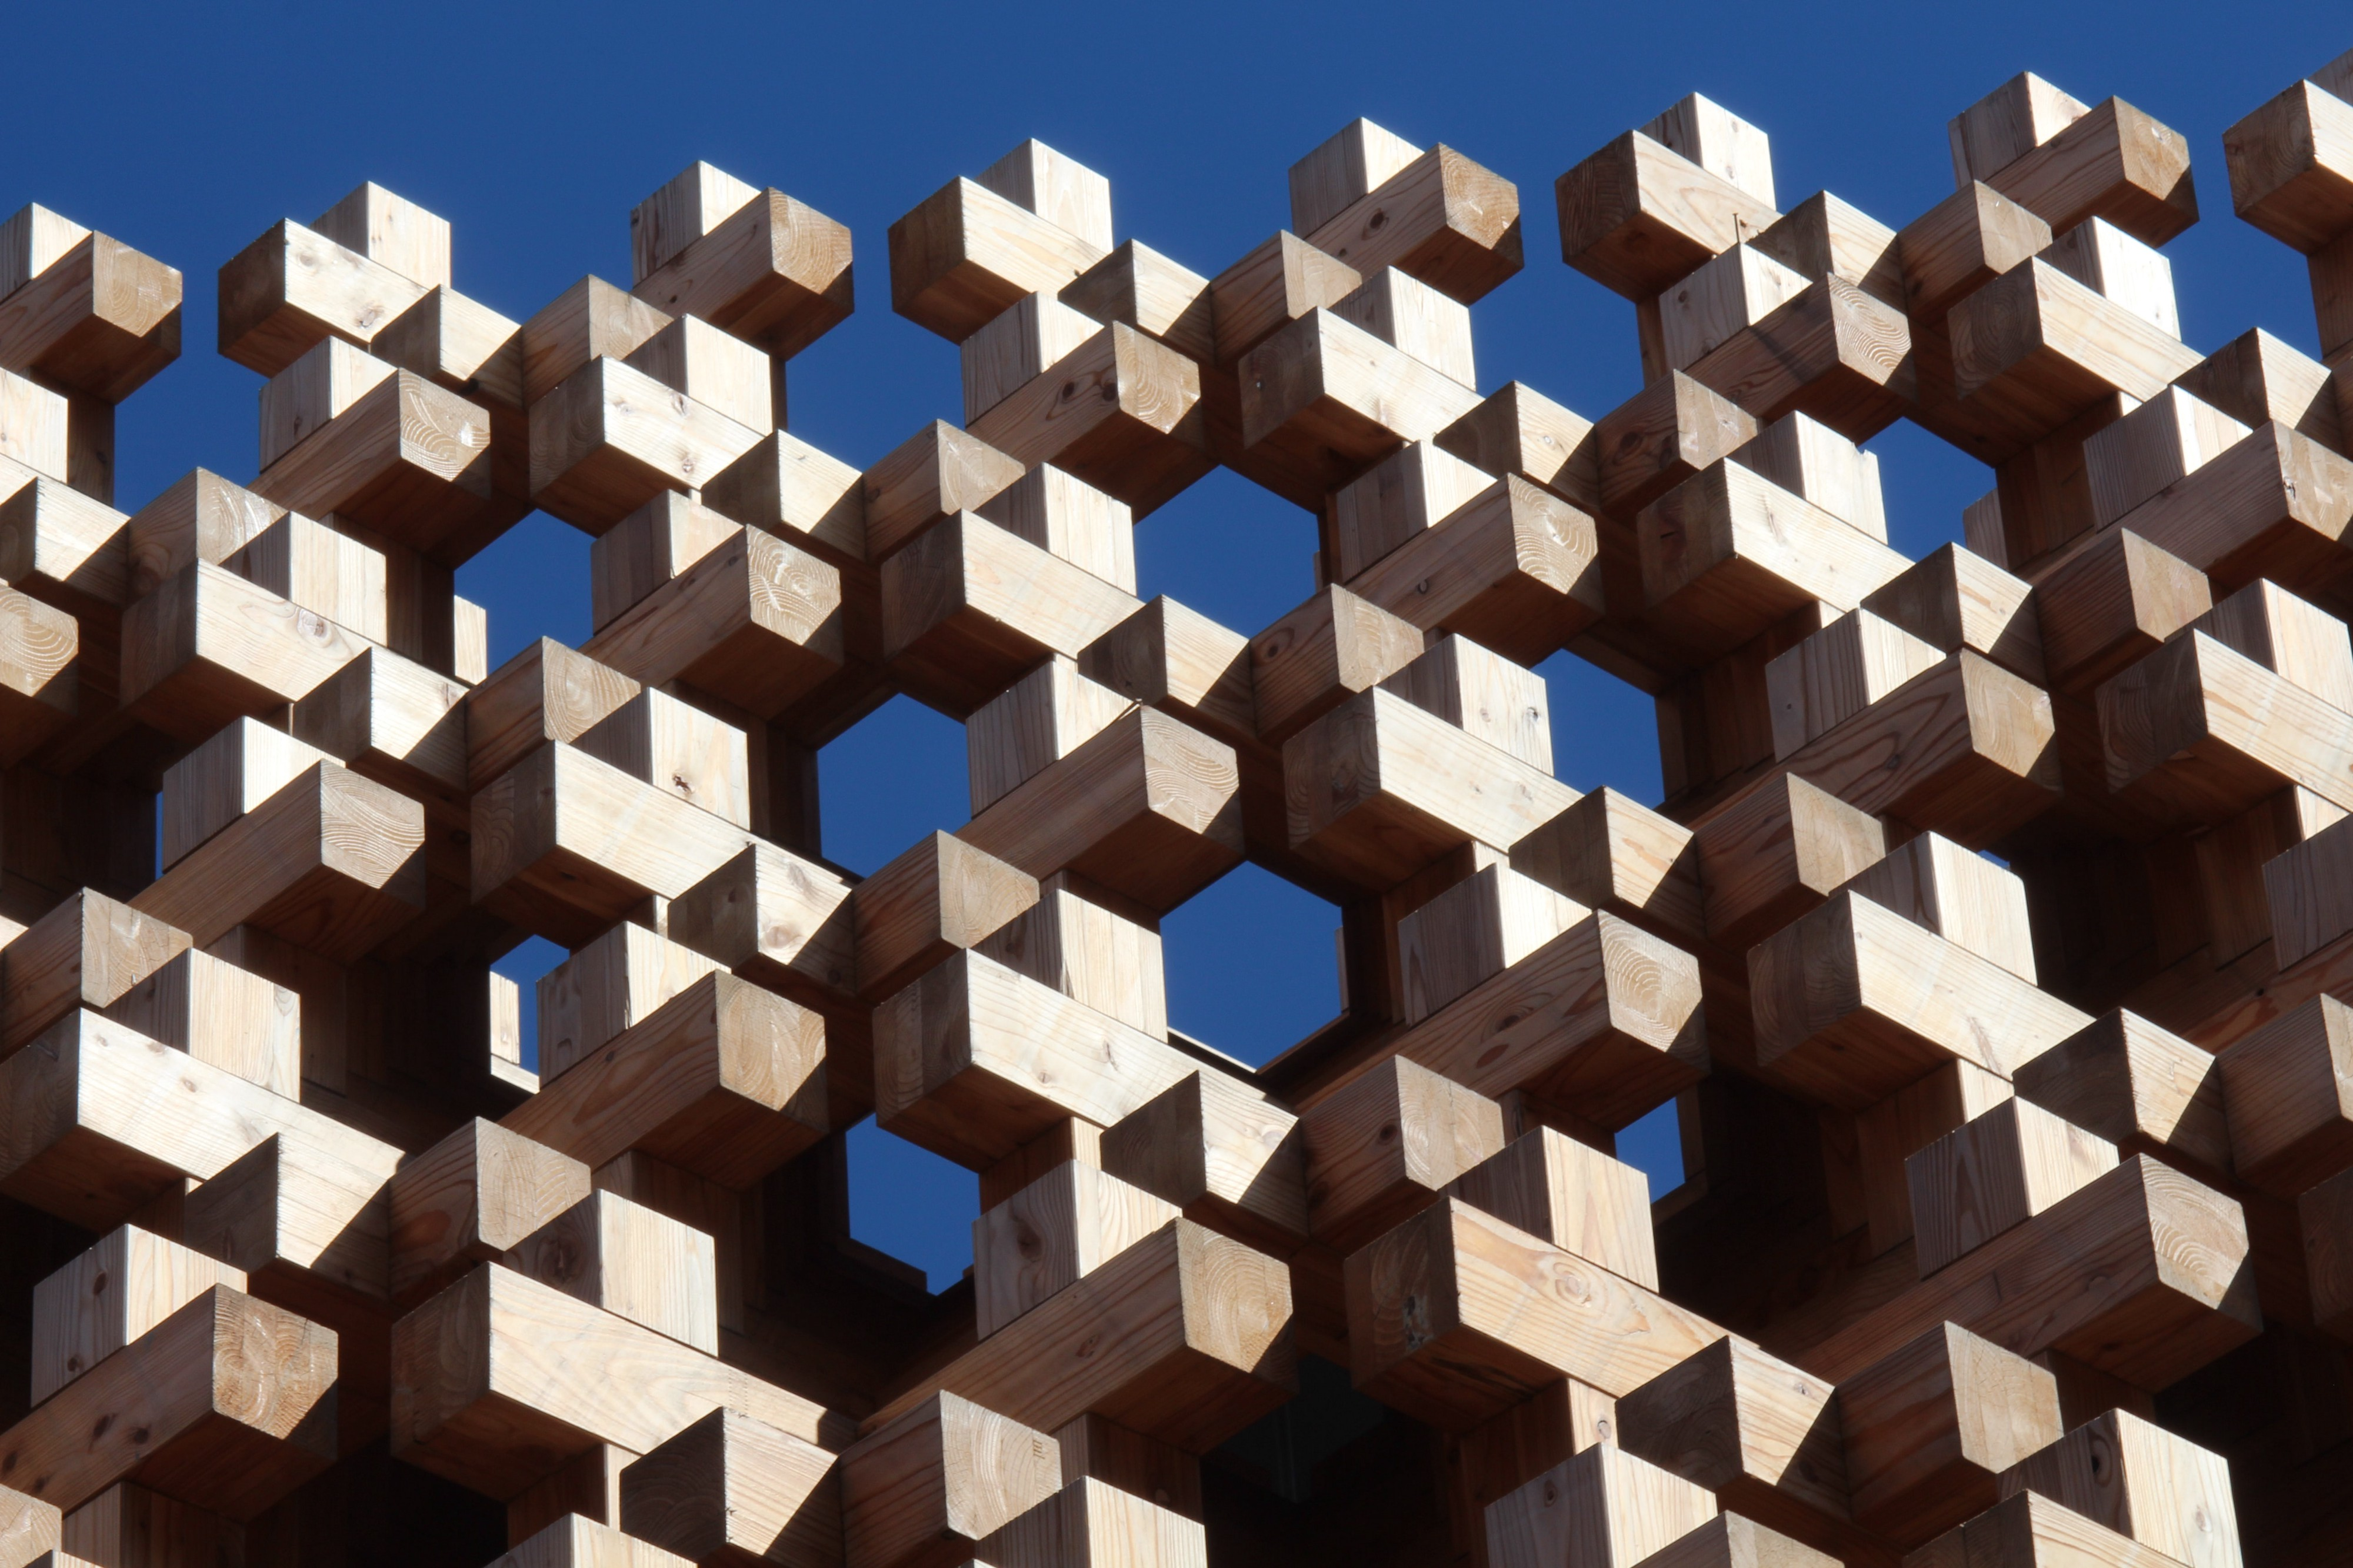 Using open source libraries is like building with blocks